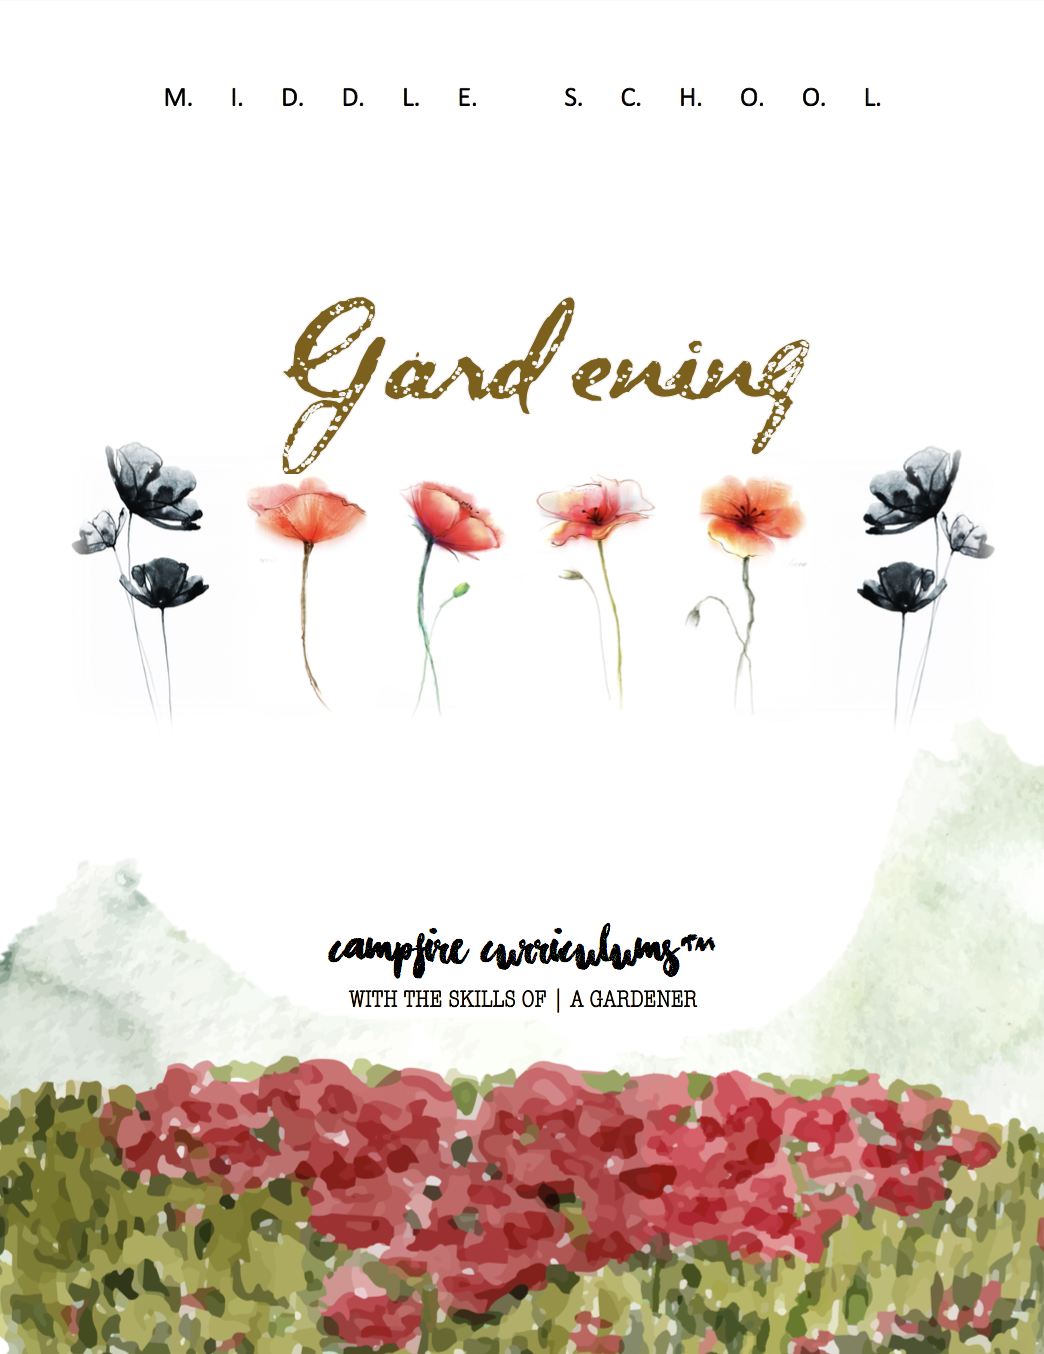 With the Skills of | A Gardener and Horticulturist (COMING SOON!)